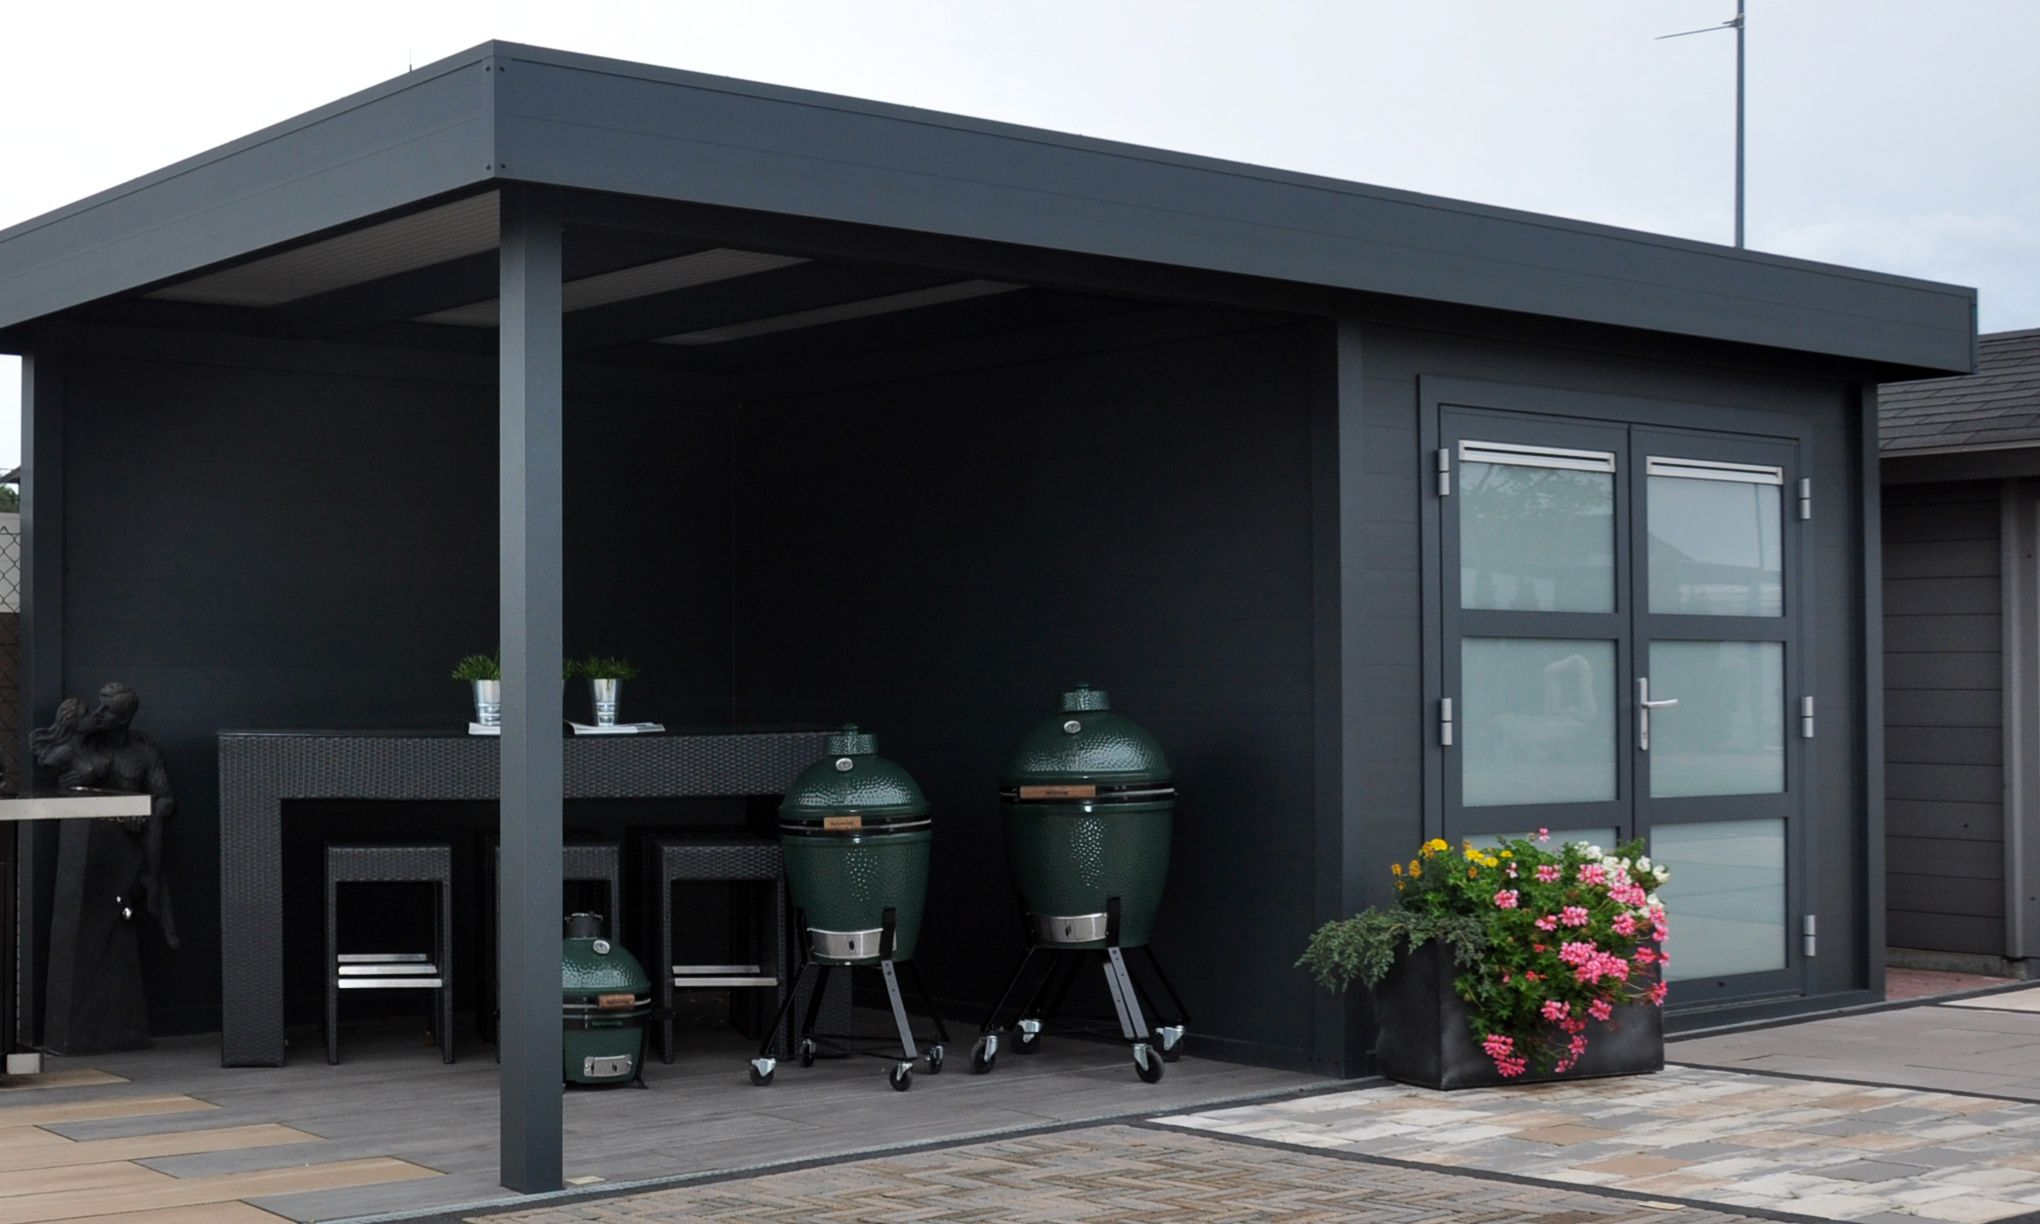 outdoor cabin aluminium tuinhuis met overkapping aan de linkerzijde q s gartendeco tuinhuis. Black Bedroom Furniture Sets. Home Design Ideas